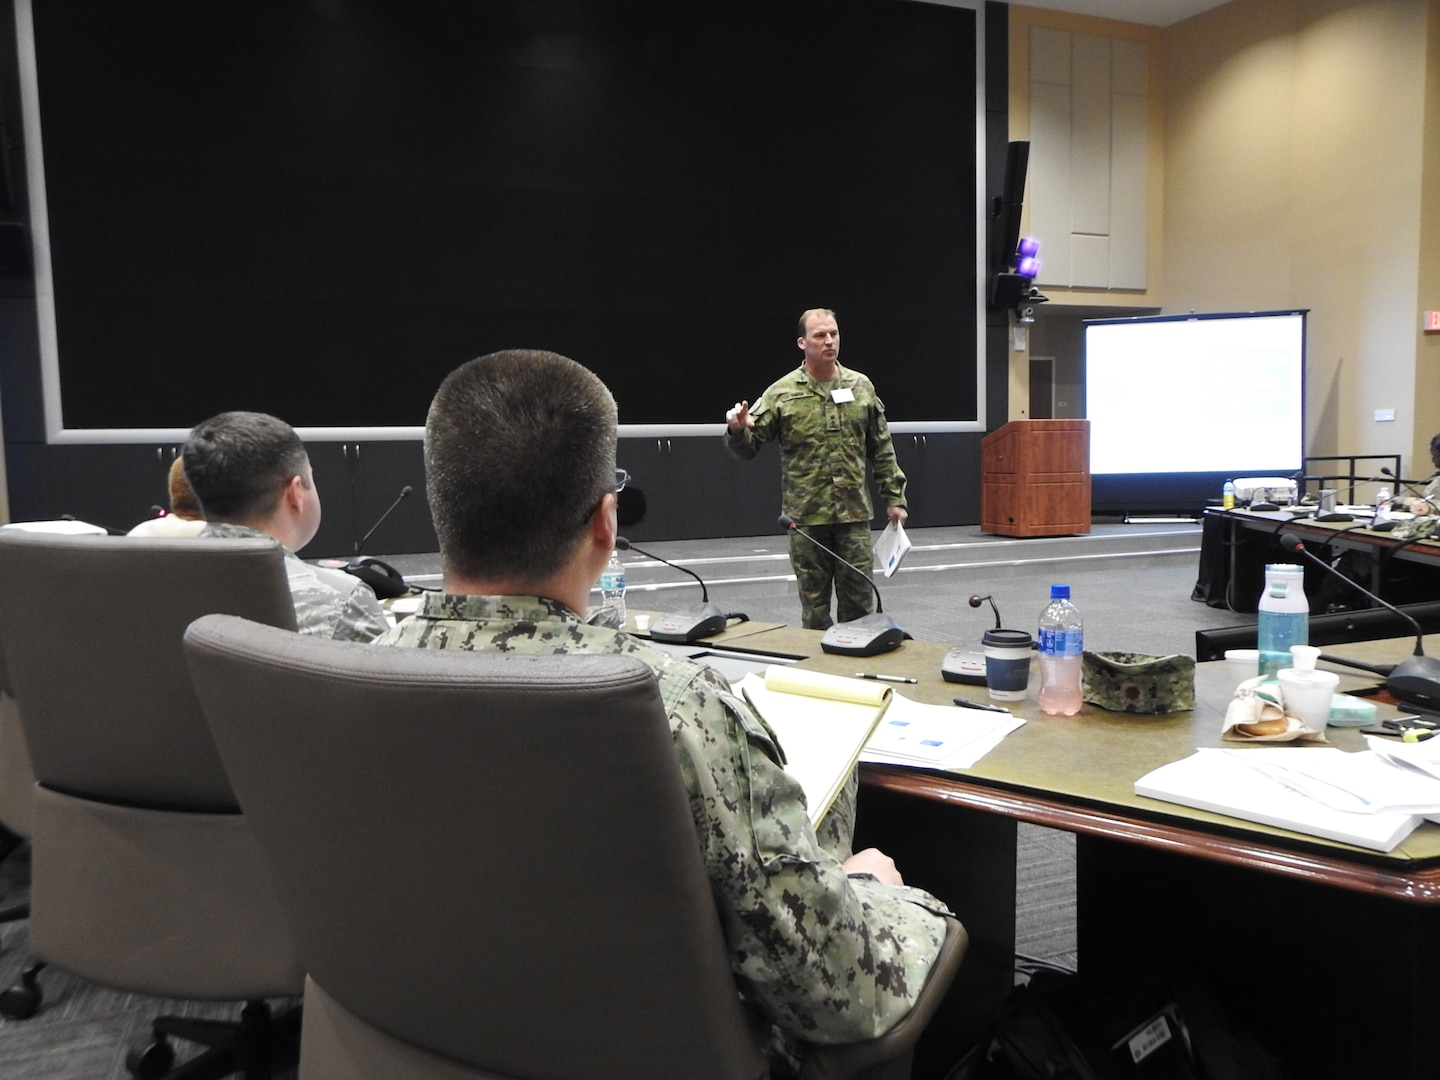 Australian Army Lt. Col. Brad Smith teaches how to integrate gender into military operations during the Operational Gender Advisor Course hosted by U.S. Southern Command in Doral, Florida, Dec. 6, 2018.